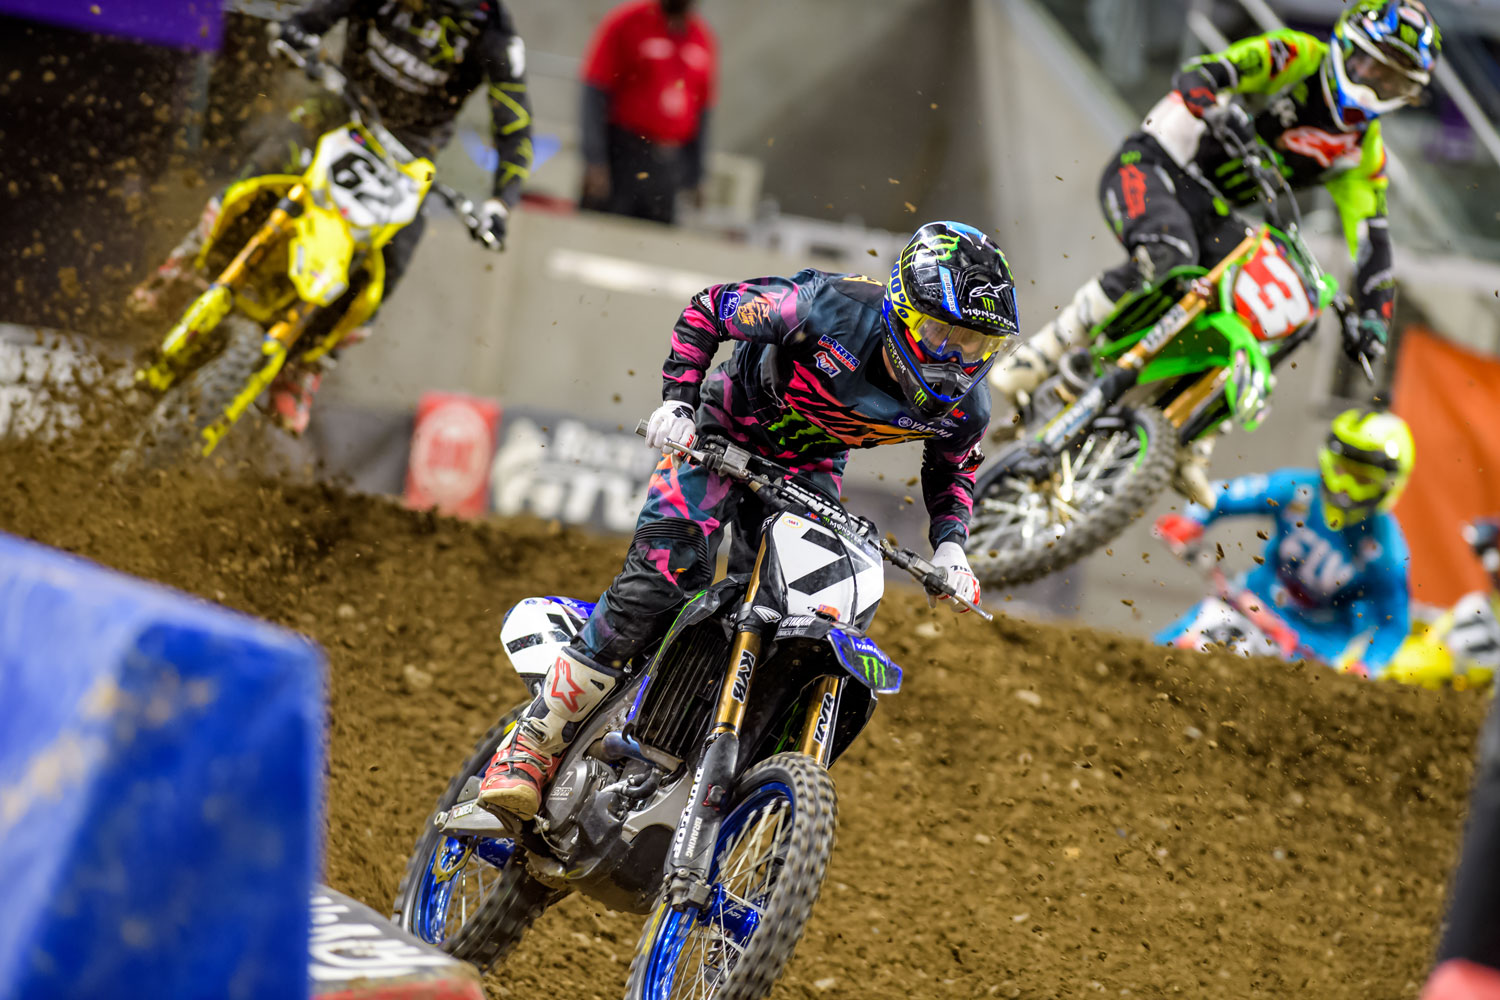 Plessinger took 4th in his heat race and 10th in the main.